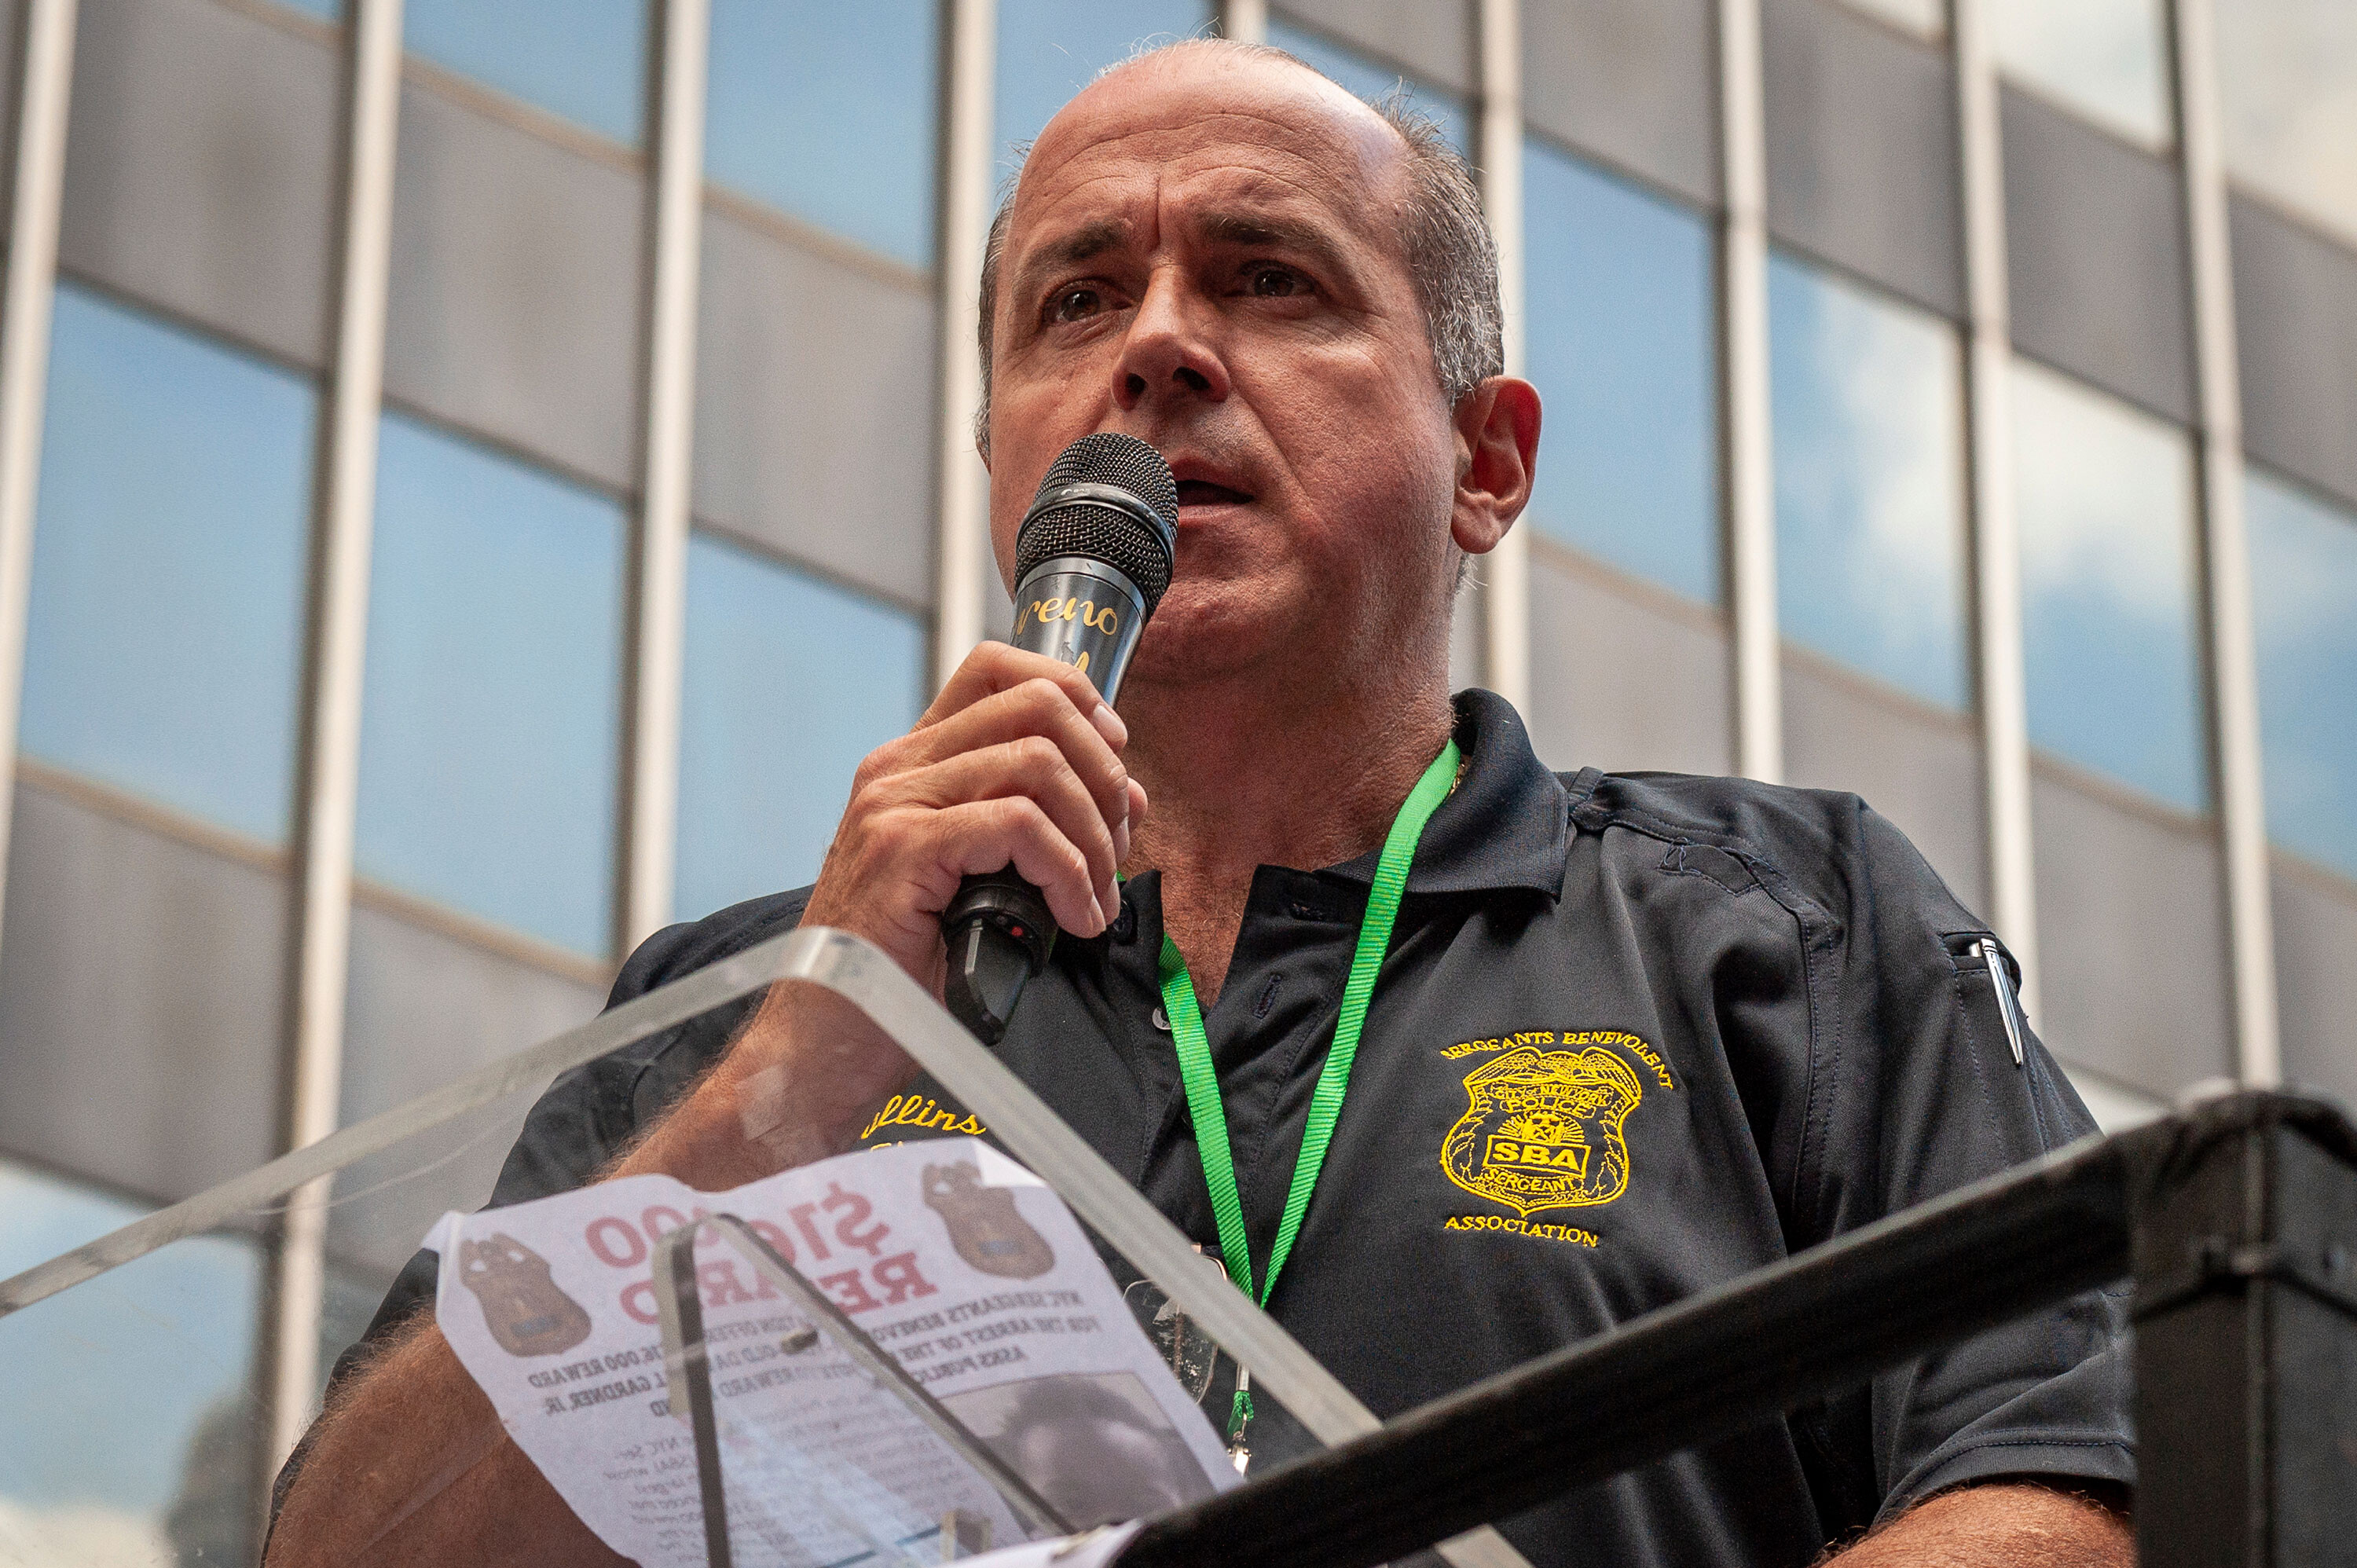 NYPD union president resigns after FBI raids his home and union office